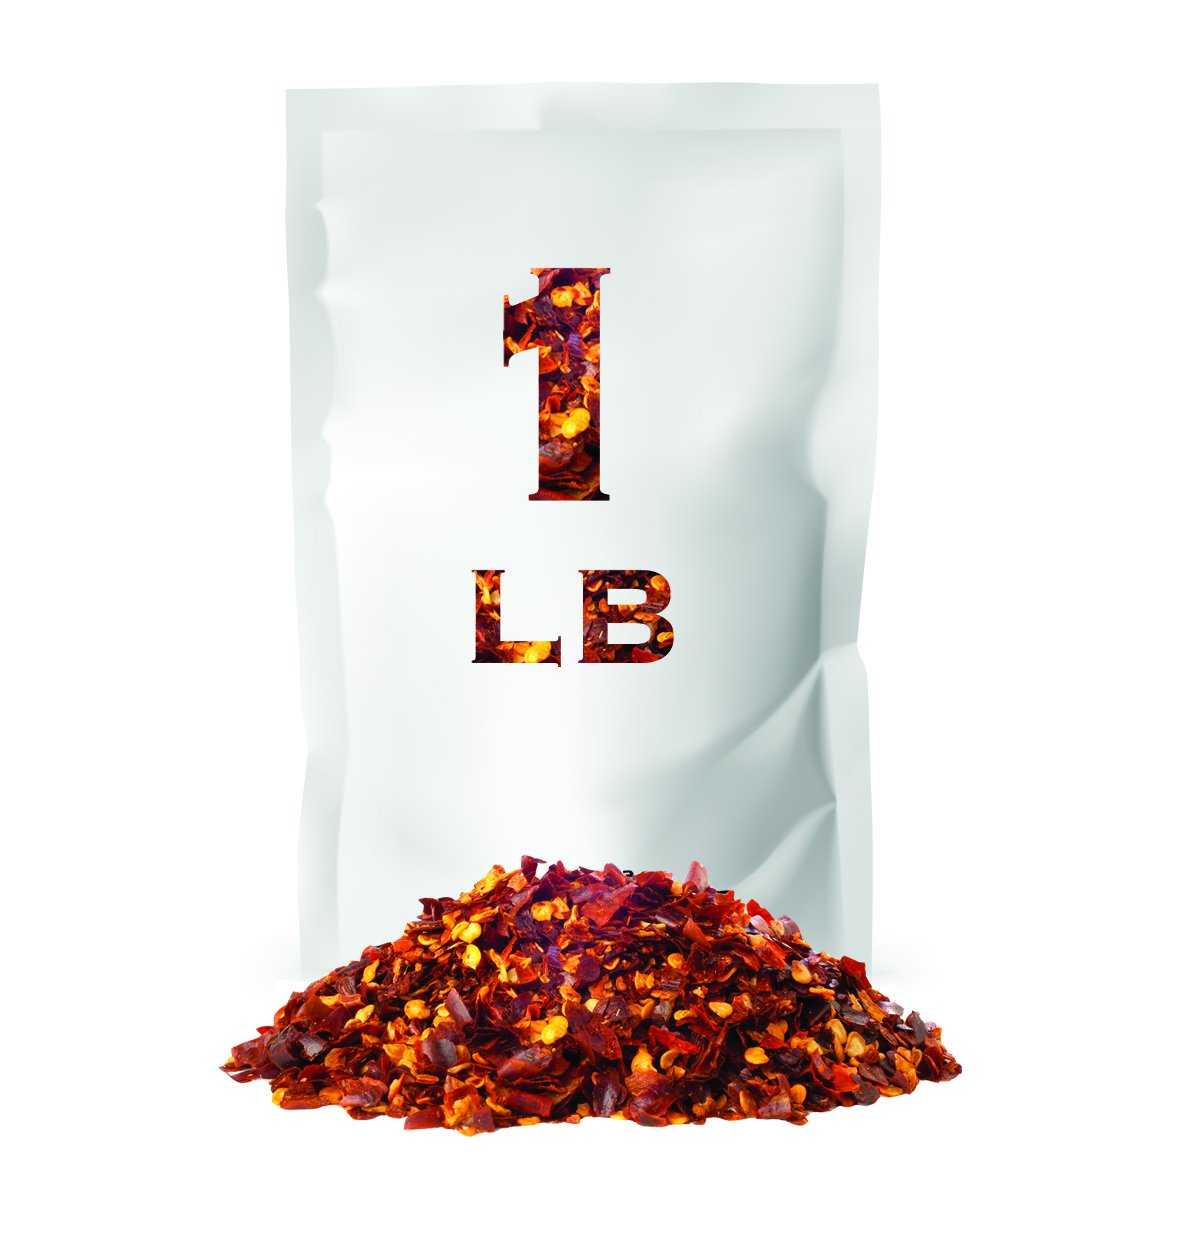 Crushed Red Pepper Flakes | Non GMO Verified | All Natural | Bulk Spice | 1 LB